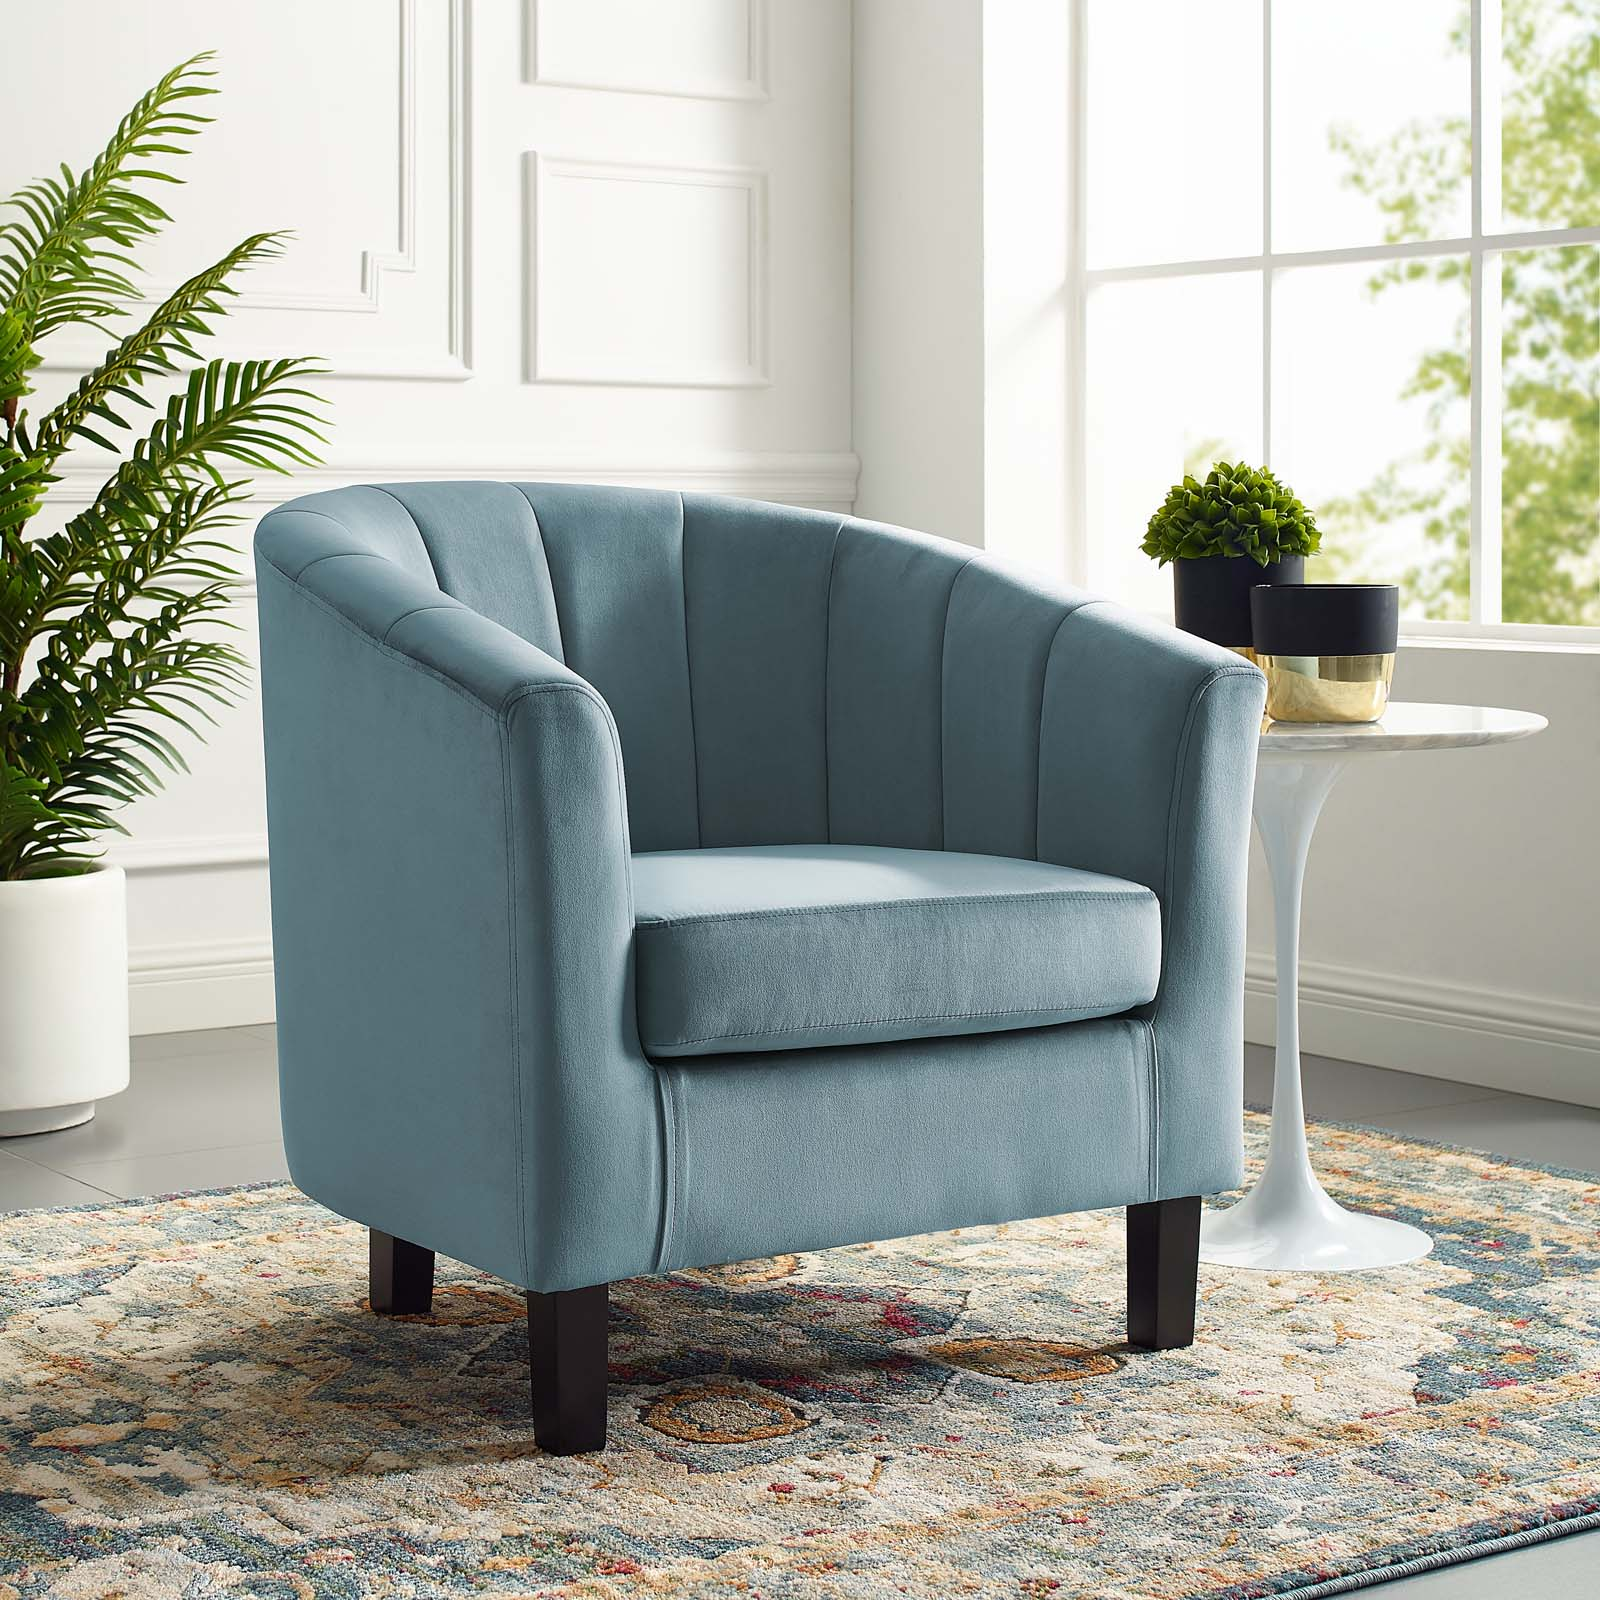 Prospect Channel Tufted Upholstered Velvet Armchair Light Blue